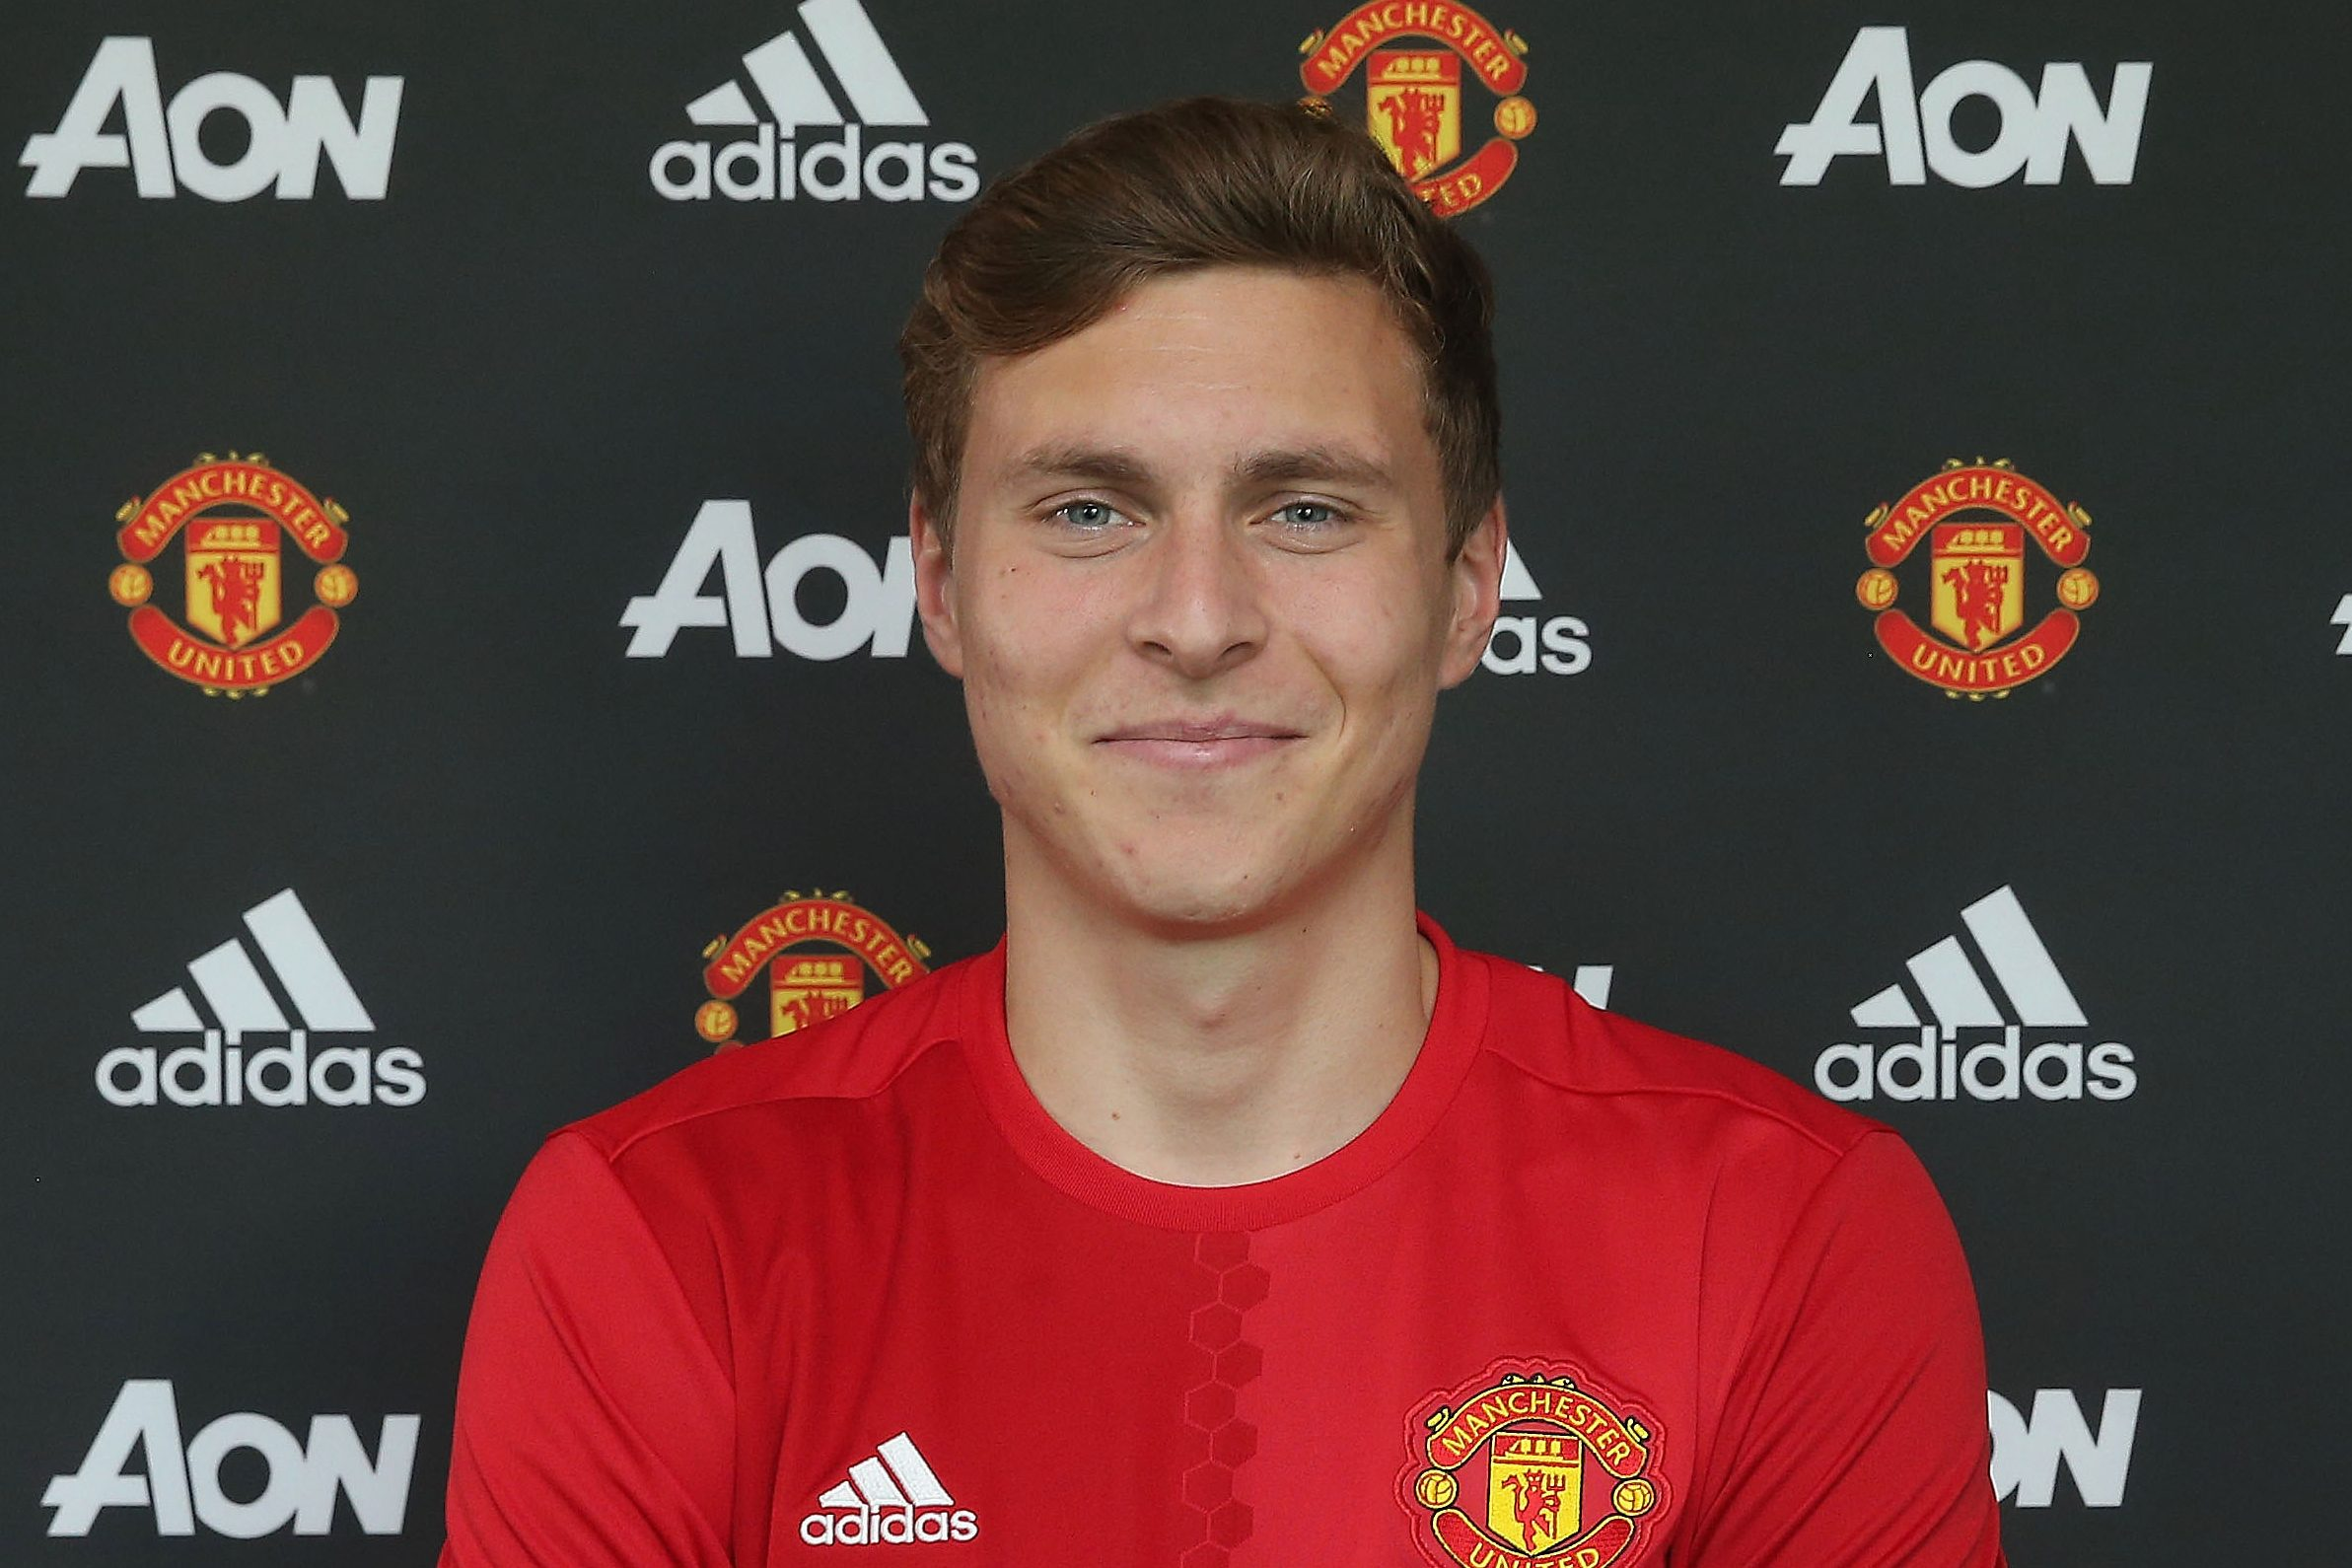 Manchester United confirm new shirt numbers for Victor Lindelof and Romelu Lukaku